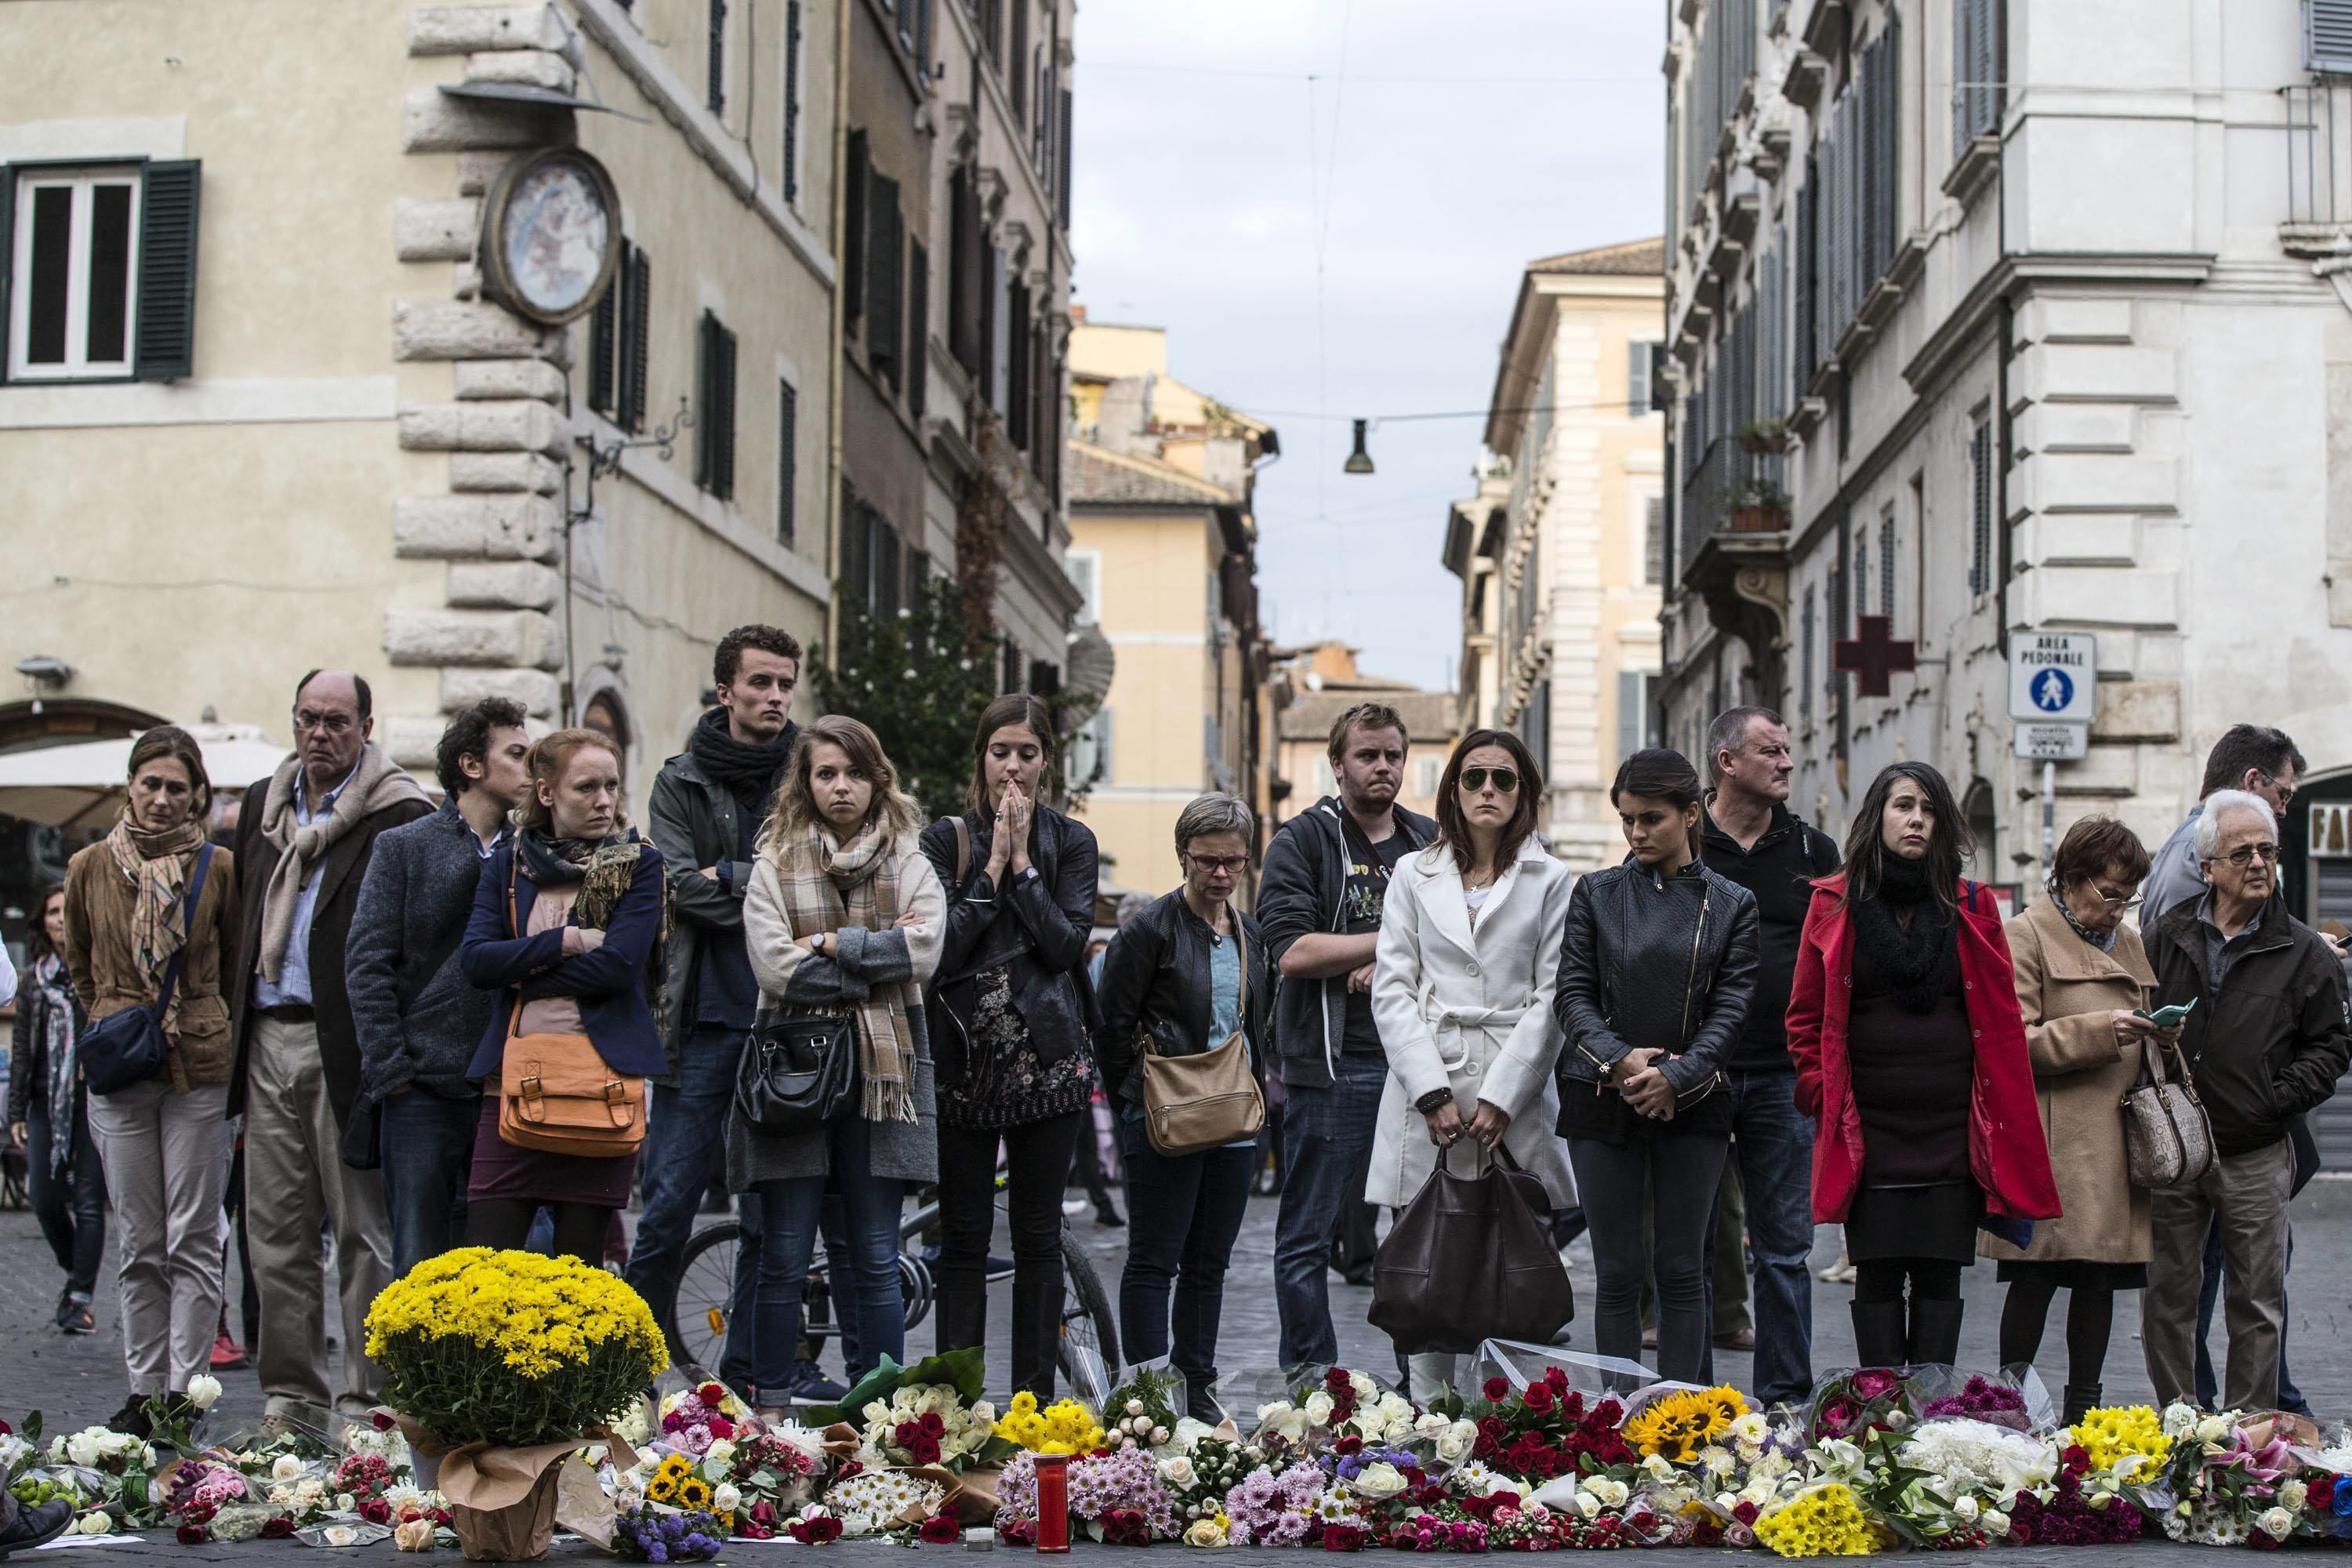 Flowers are laid in front of the French embassy in Rome on Nov. 14, 2015.